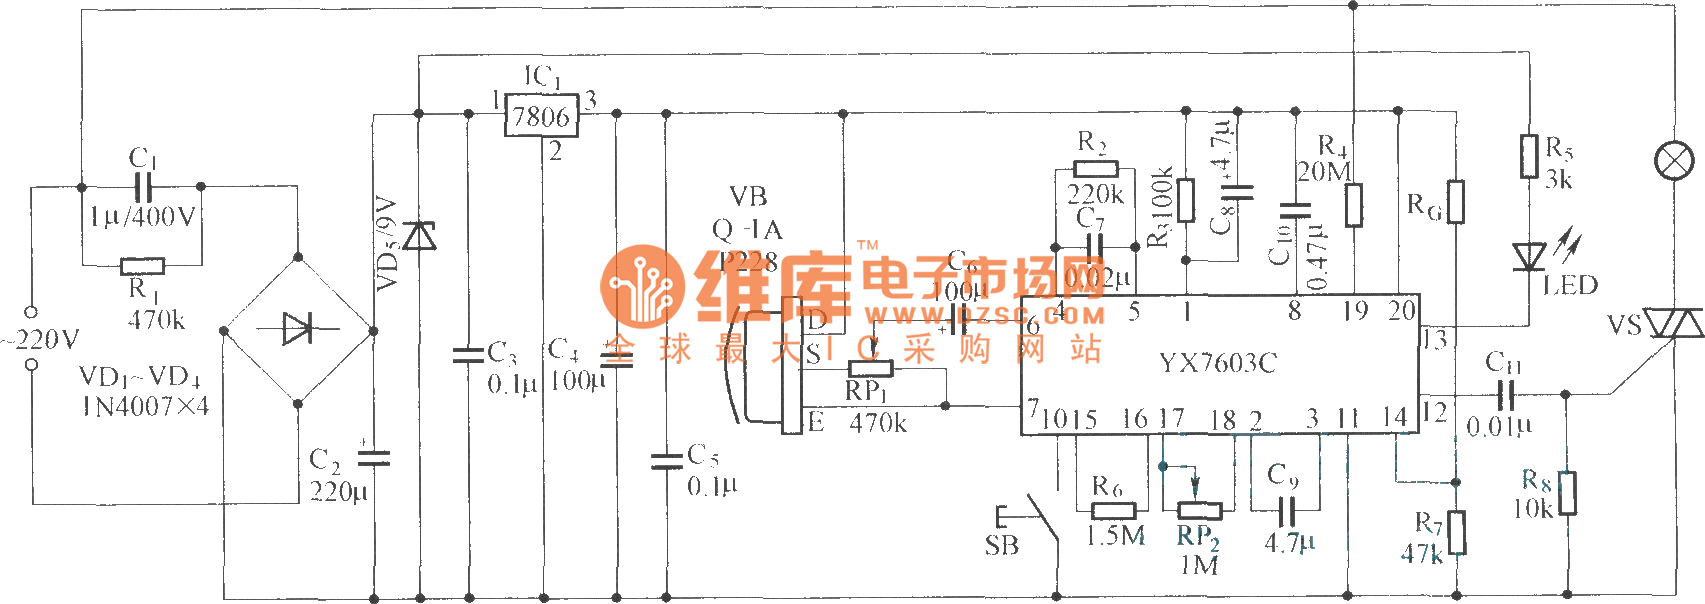 Pyroelectricity Human Body Induction Lamp Switch Circuir Diagram Circuit 19 Computerrelatedcircuit Yx7603c Is A Pyroelectric Infrared Control Integrated